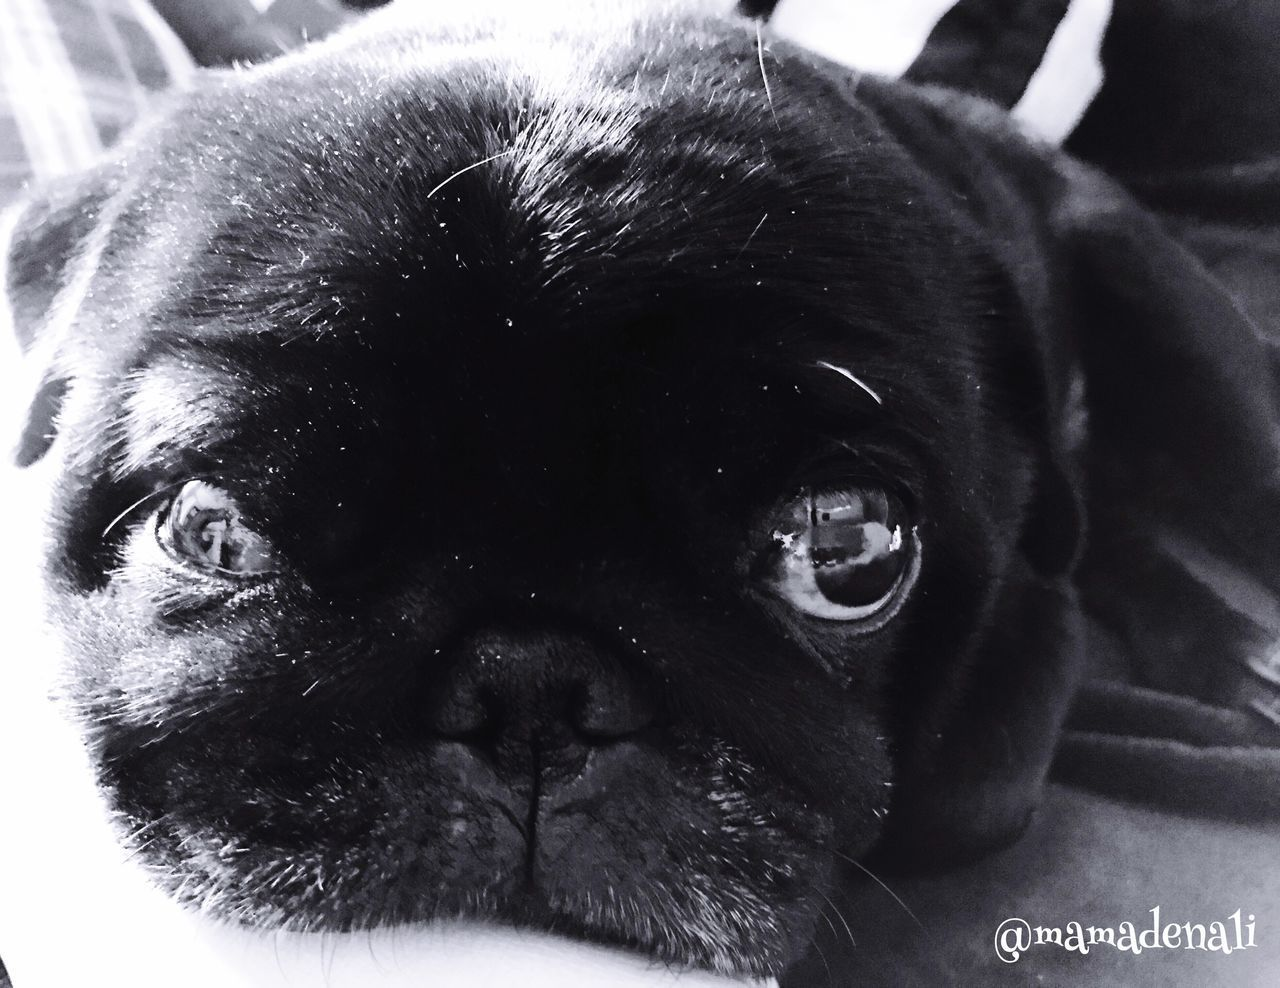 Dog Pets Domestic Animals Mammal One Animal Animal Themes Close-up No People Indoors  Black Color Portrait Day Puglover Puglife Pug Looking At Camera Blackandwhite EyeEmNewHere